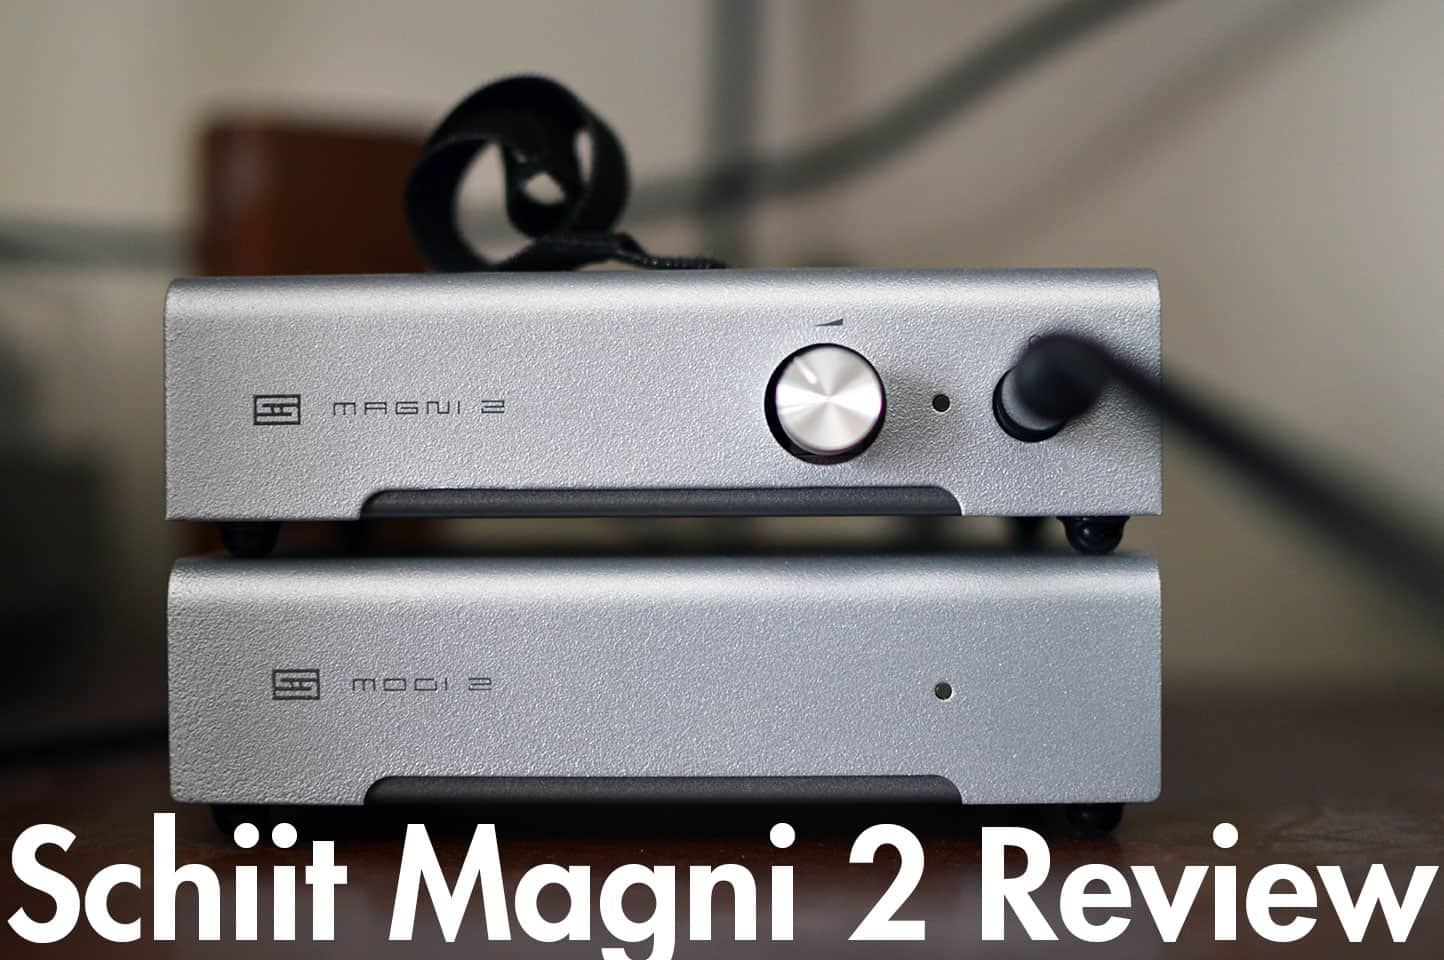 Schiit Magni 2 Review